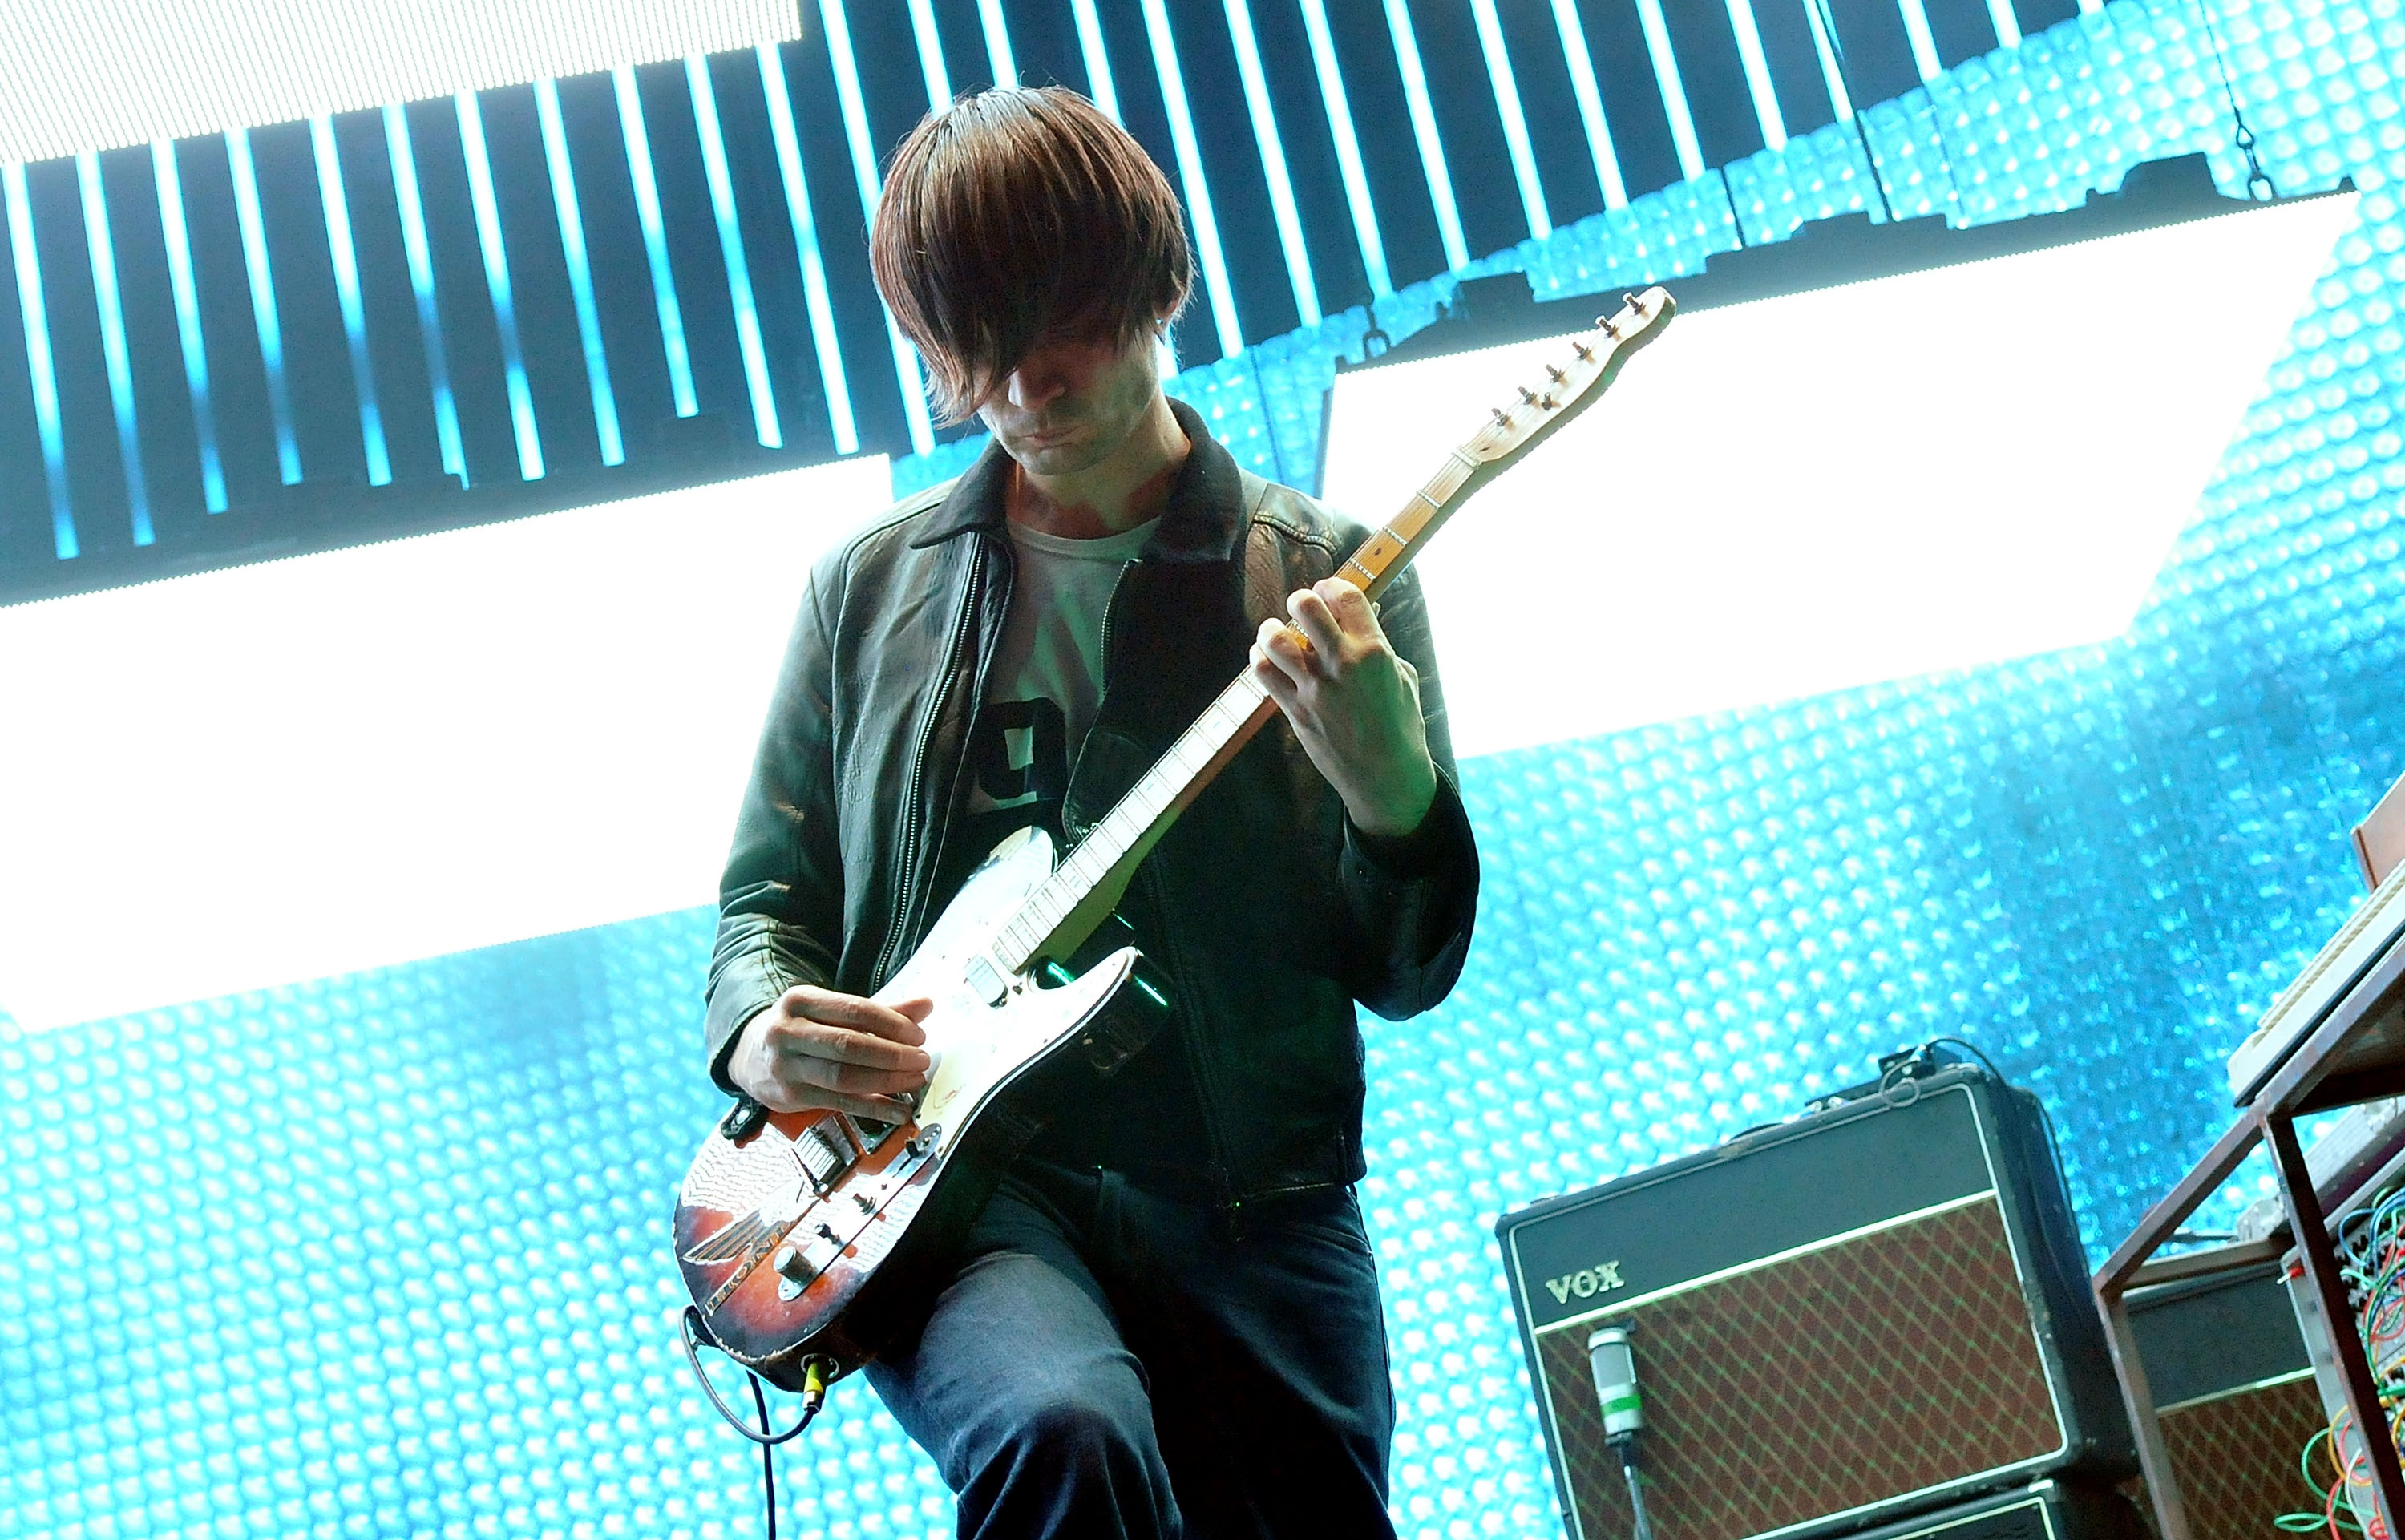 Jonny Greenwood of Radiohead performs live on stage at 02 Arena on October 8, 2012, in London, England. (Getty Images)